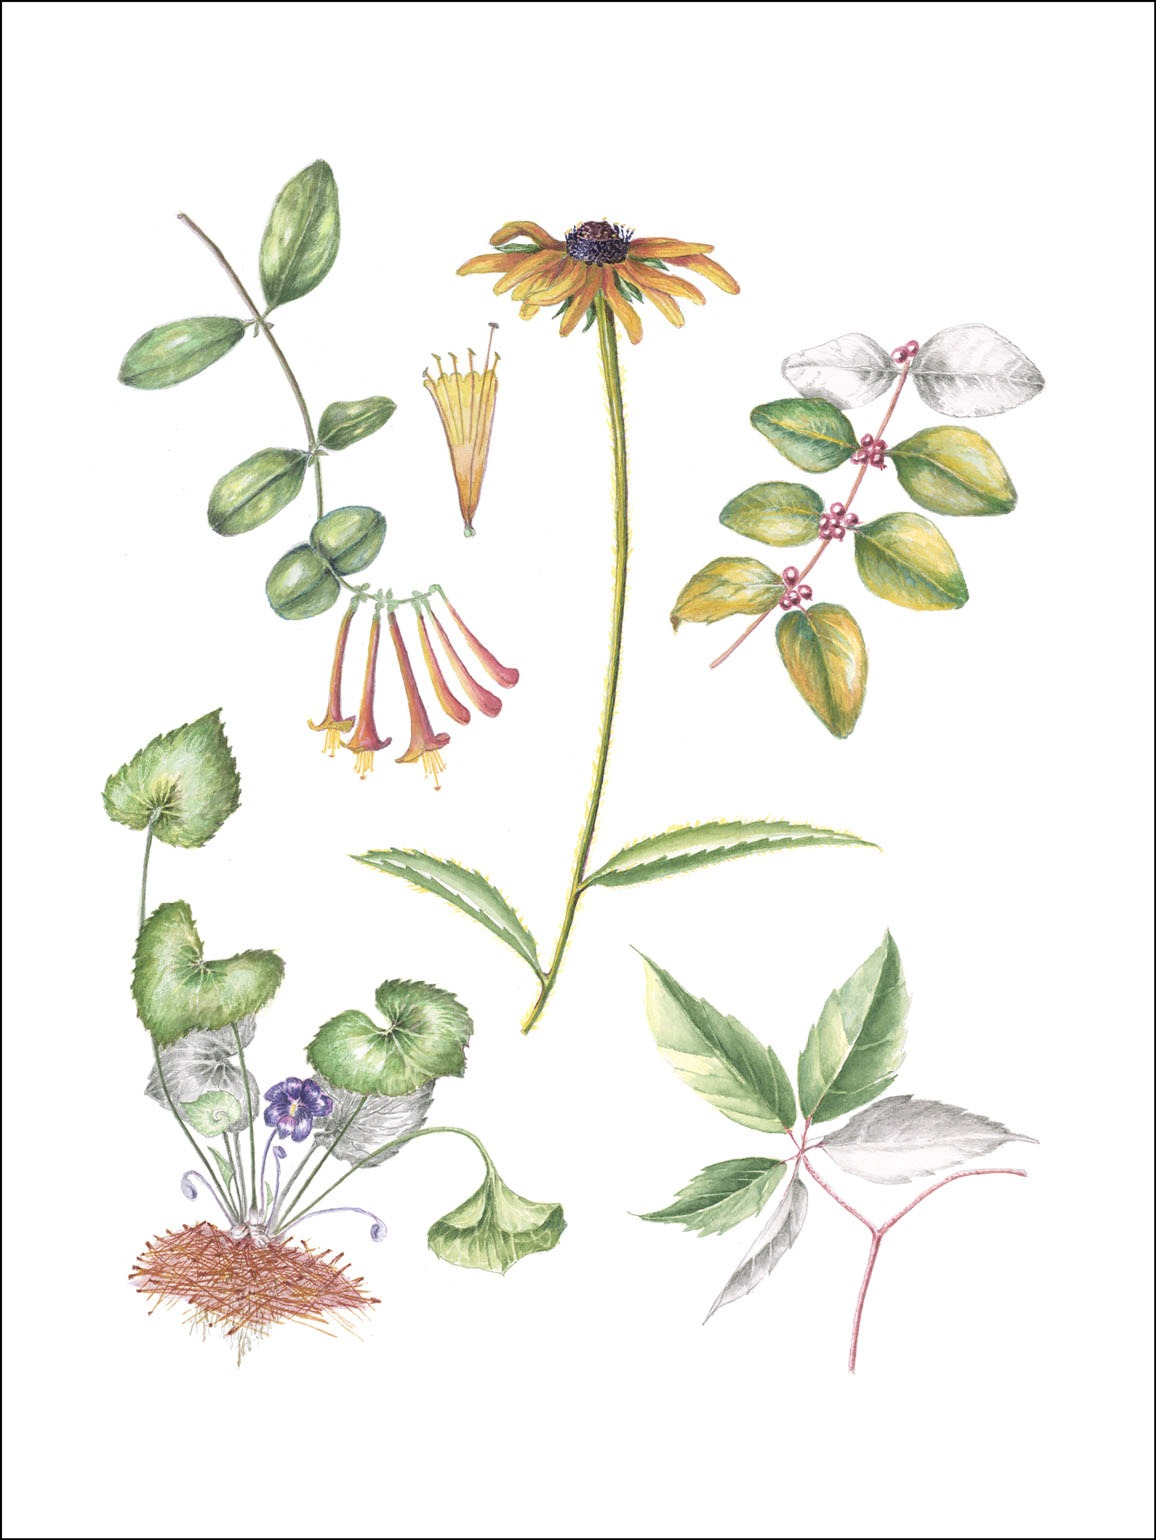 Native plant illustrations drawn by Betsy Lyon.